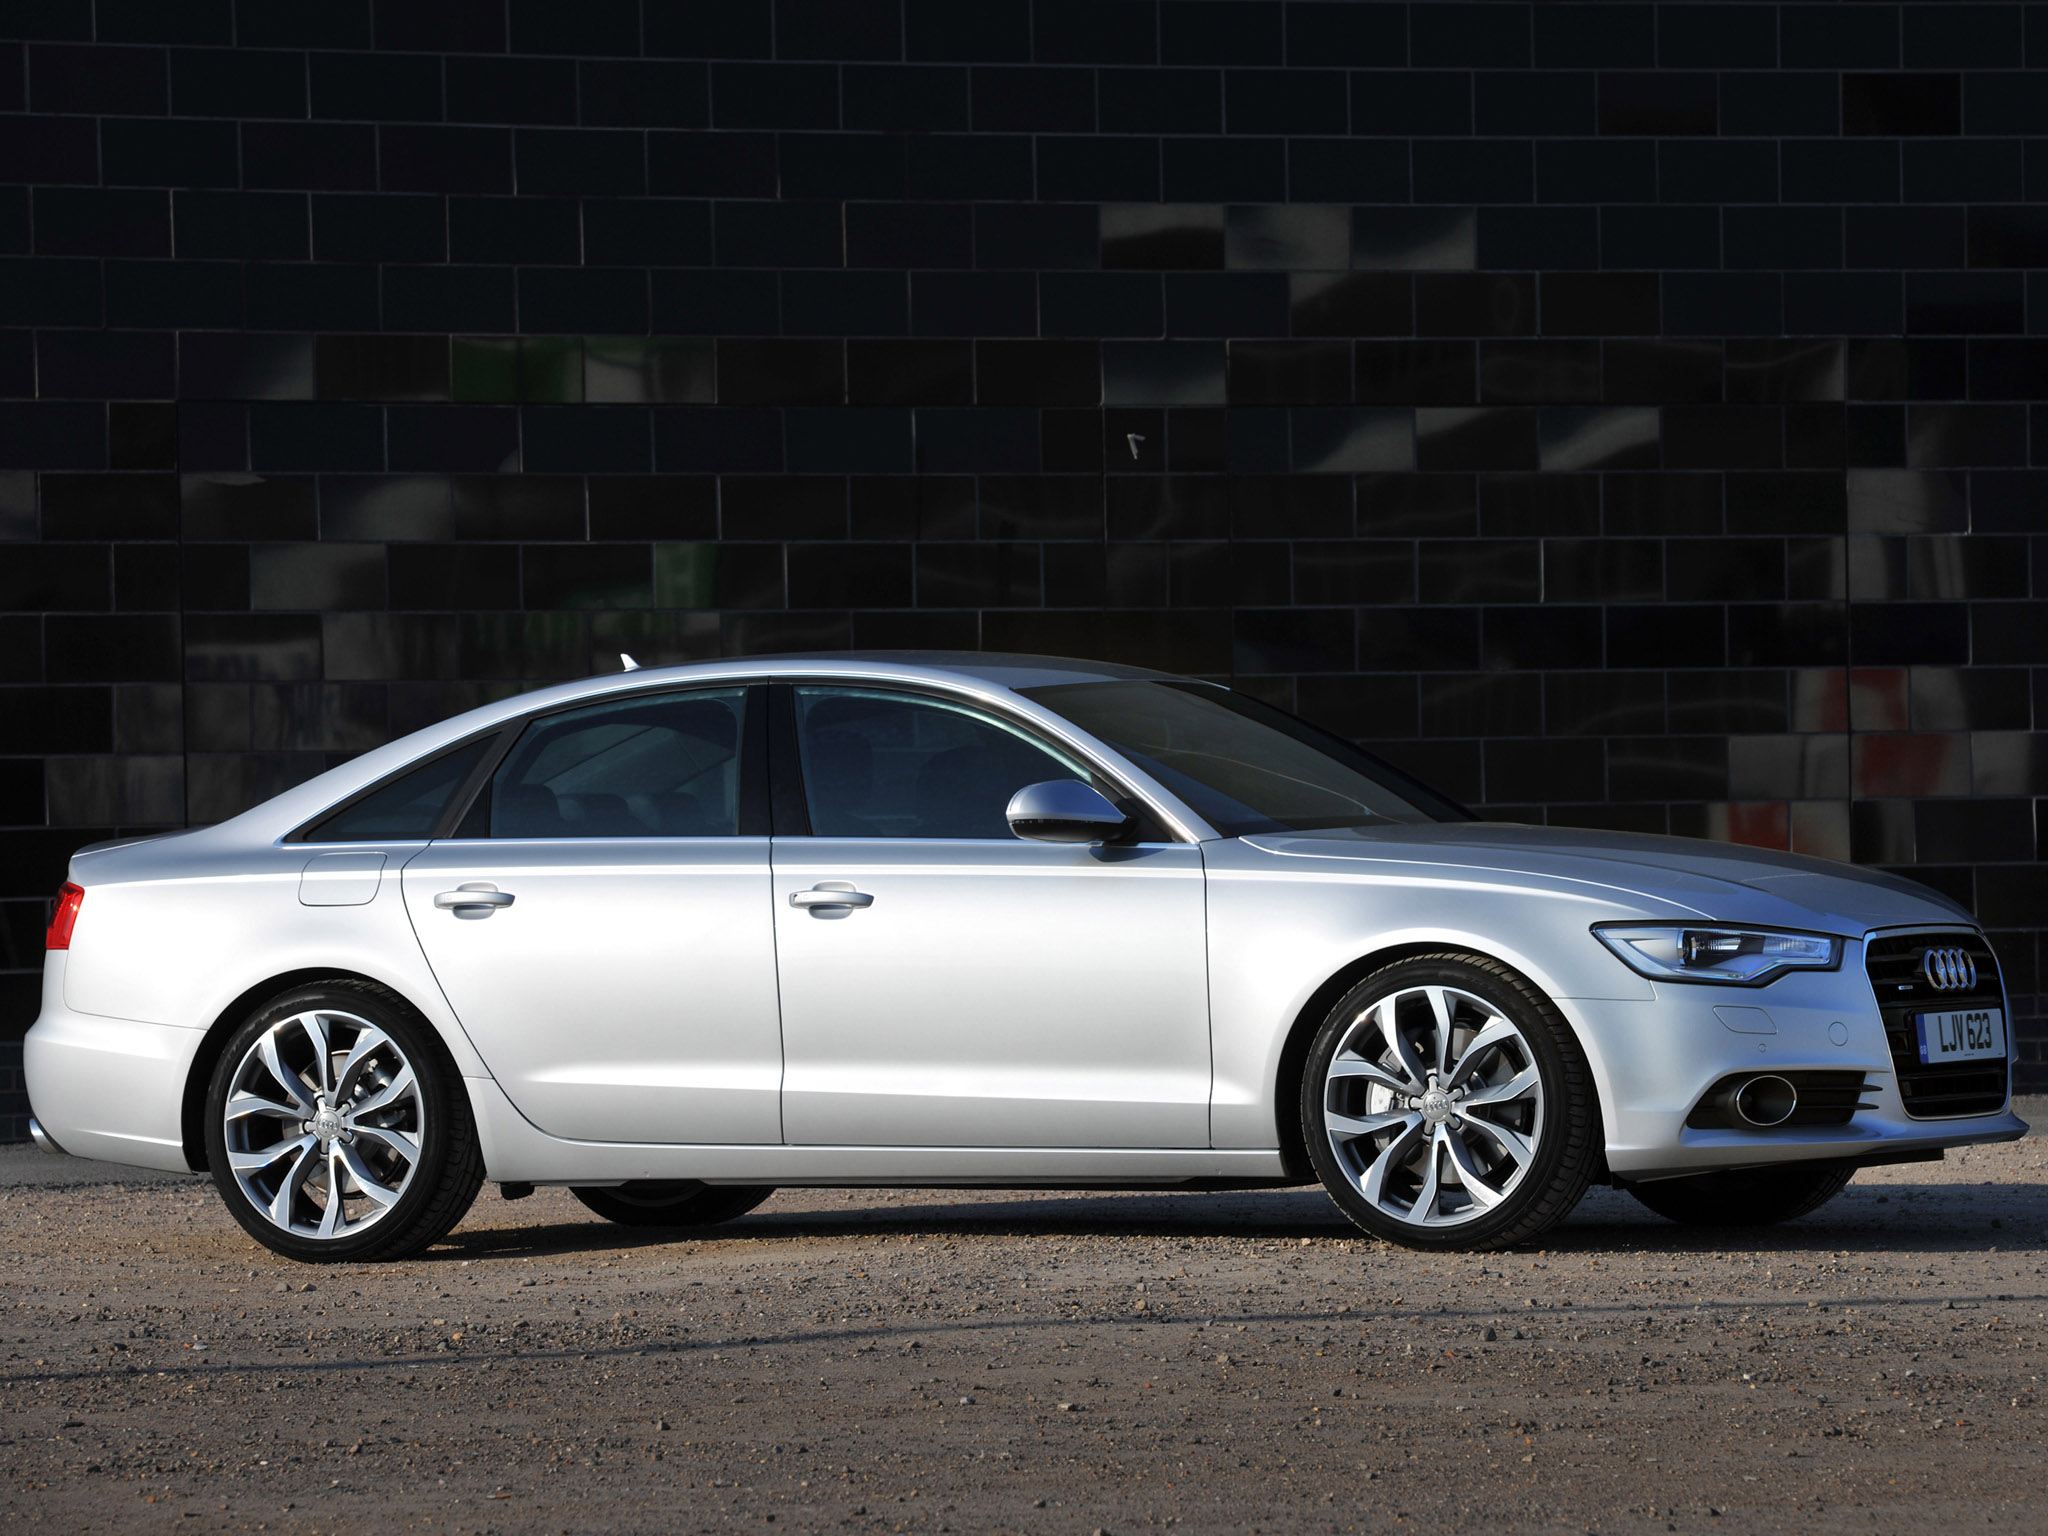 audi a6 3 0 t uk 2011 audi a6 3 0 t uk 2011 photo 05 car in pictures car photo gallery. Black Bedroom Furniture Sets. Home Design Ideas